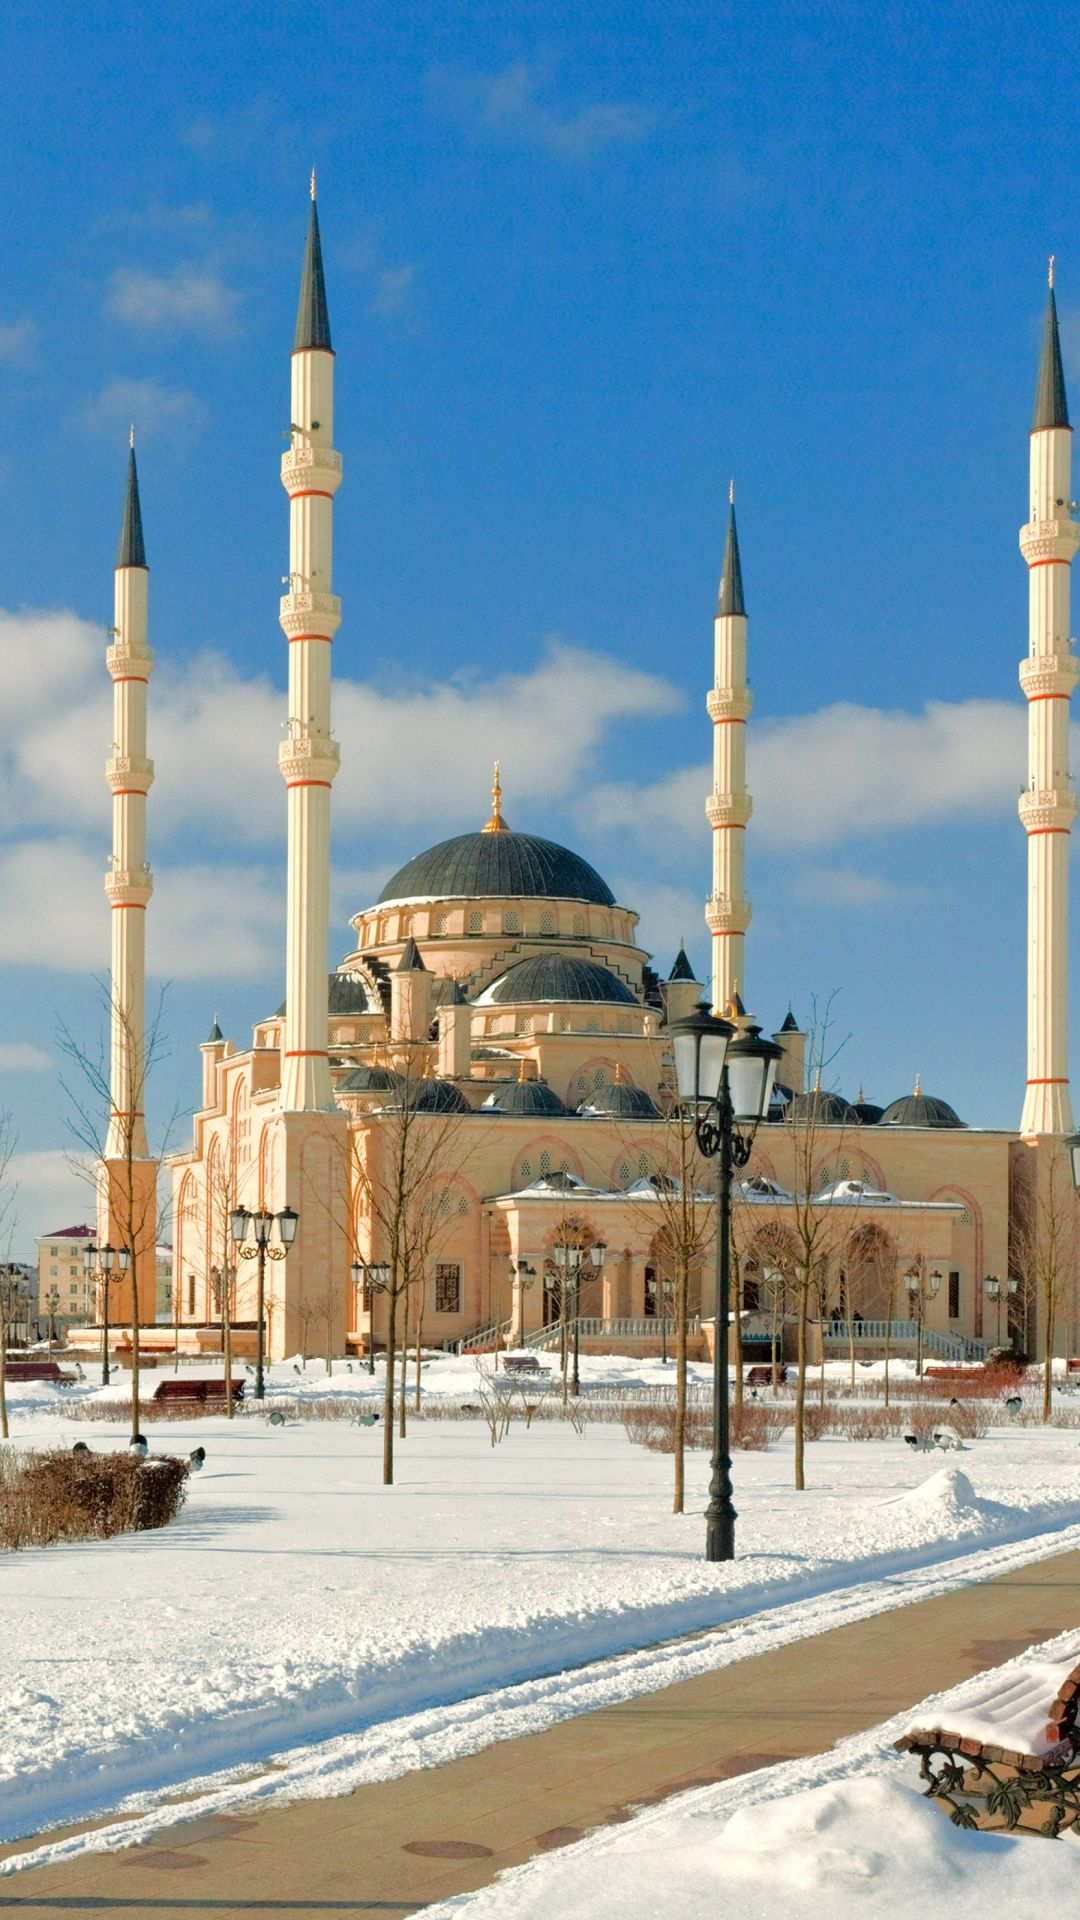 Akhmad Kadyrov Mosque In Grozny, Chechnya Is The Largest